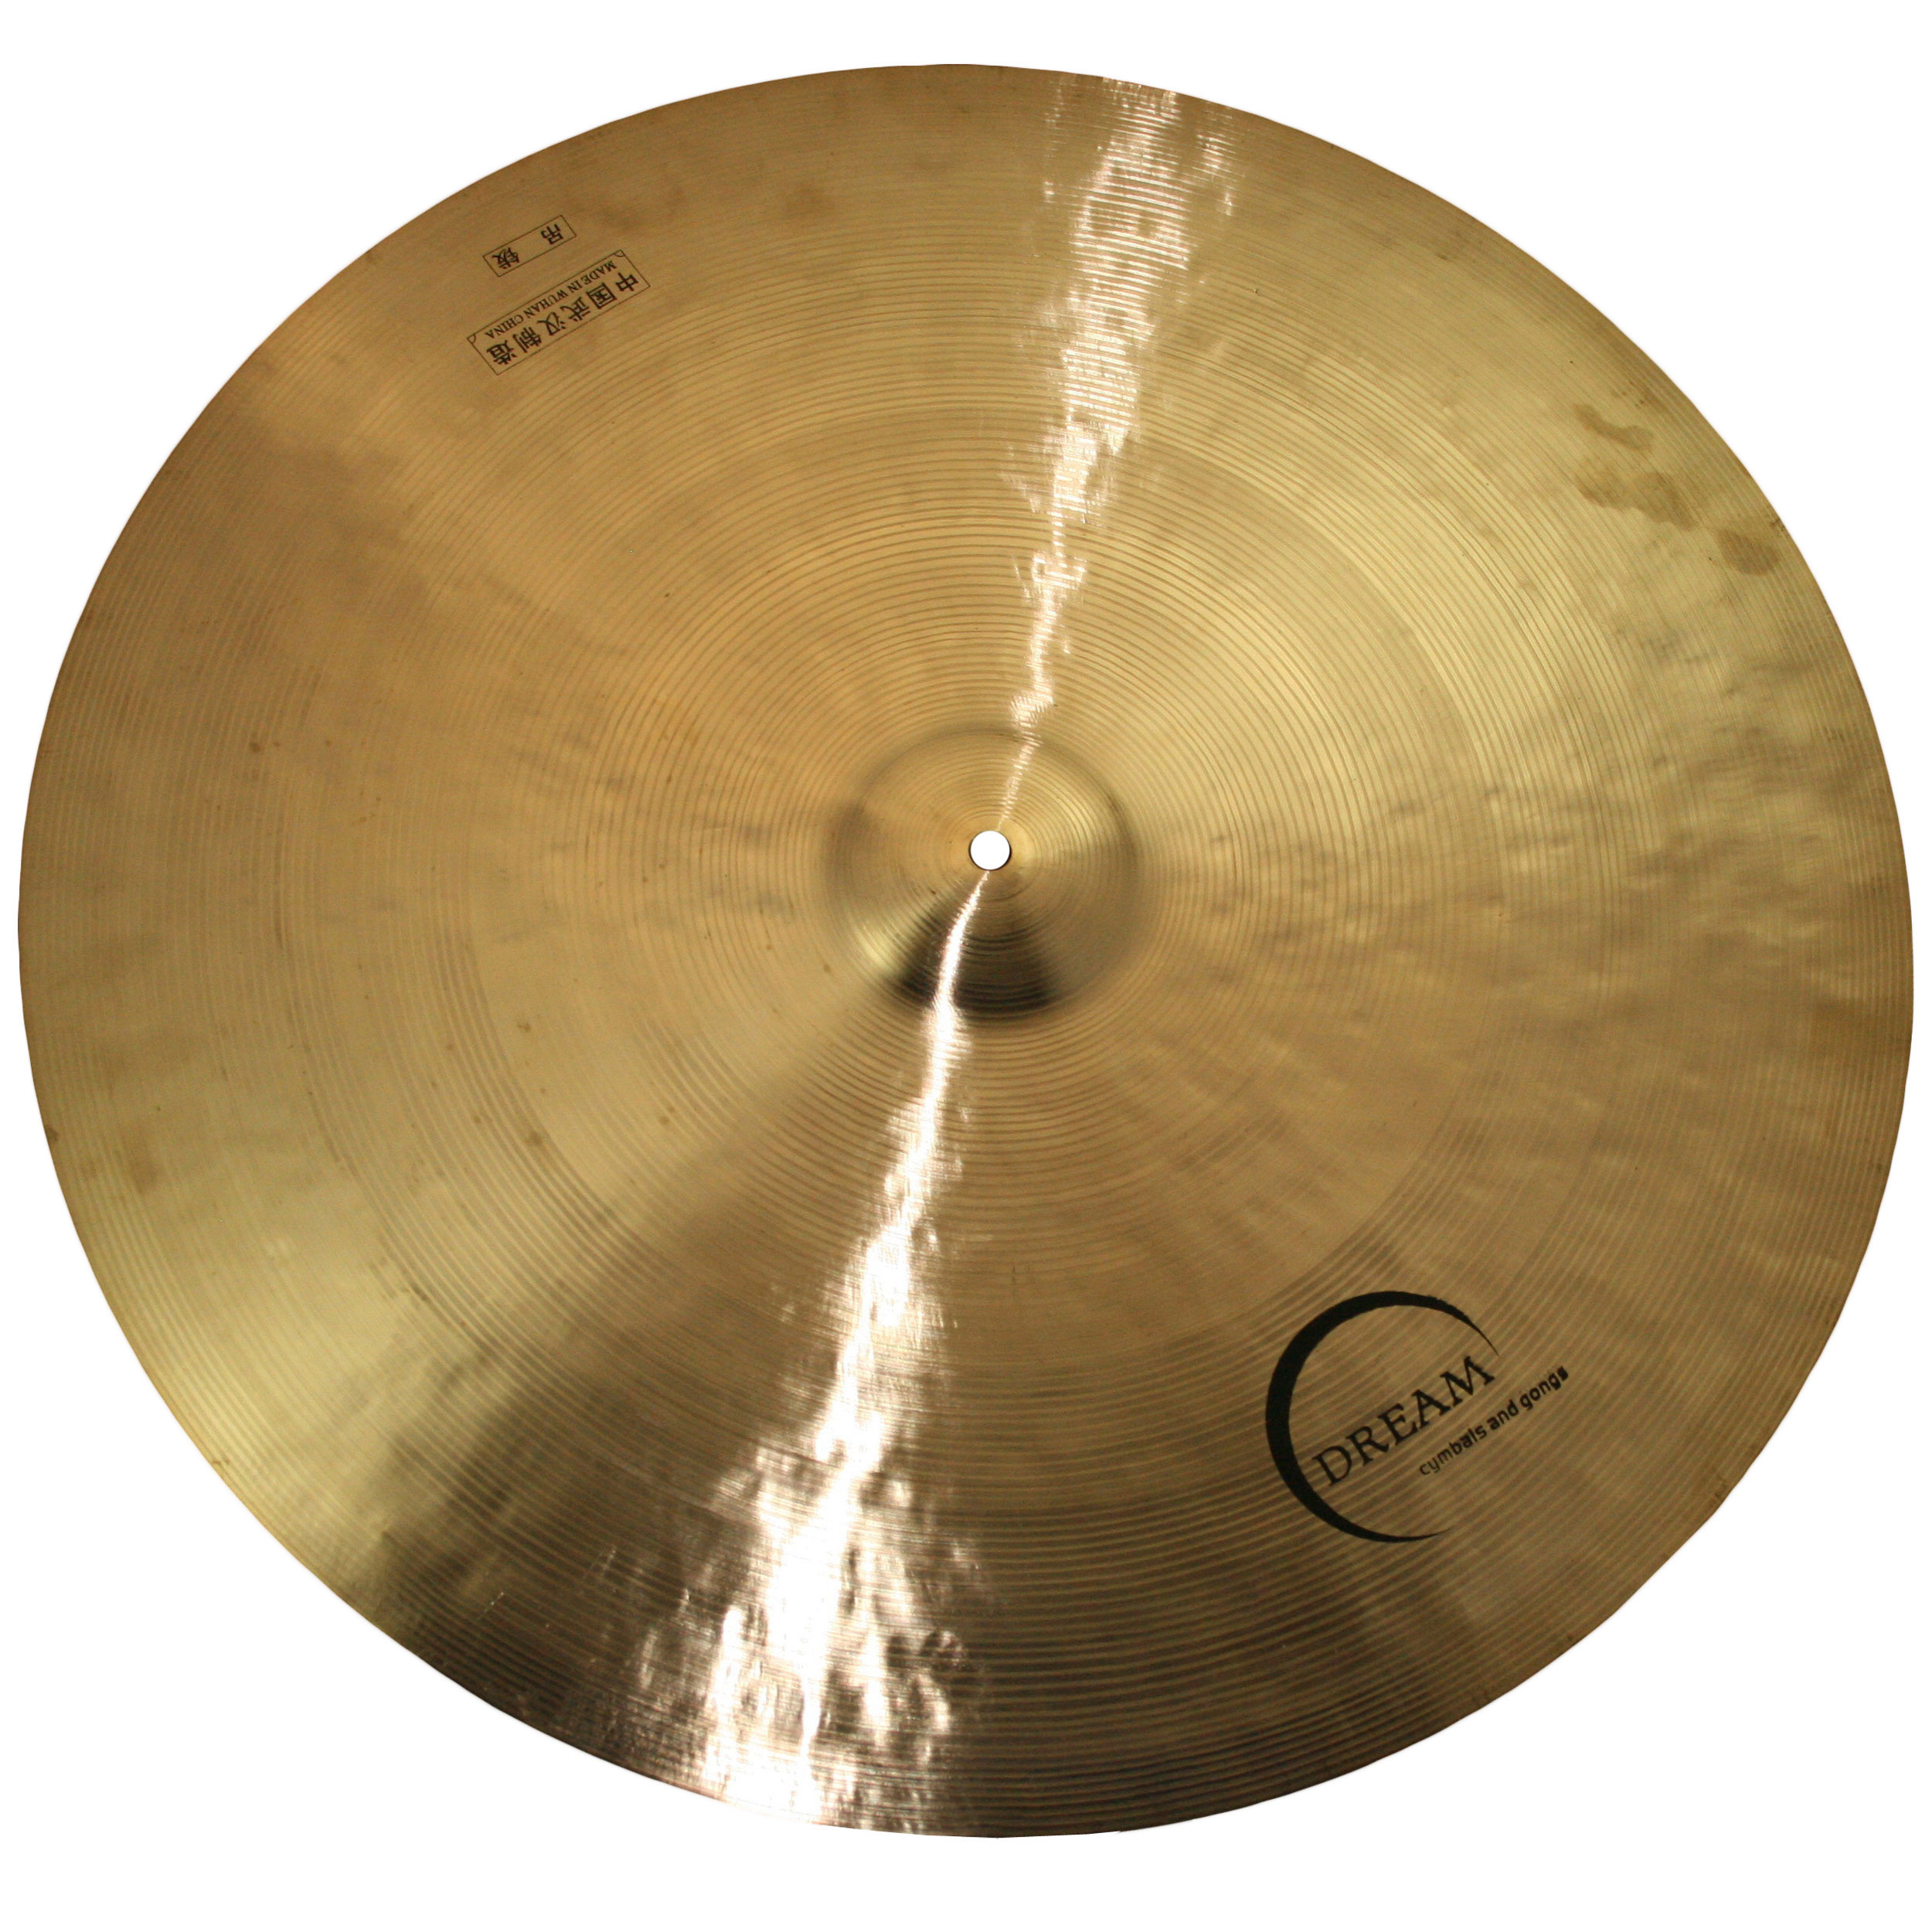 "Dream 24"" Contact Small Bell Flat Ride Cymbal"